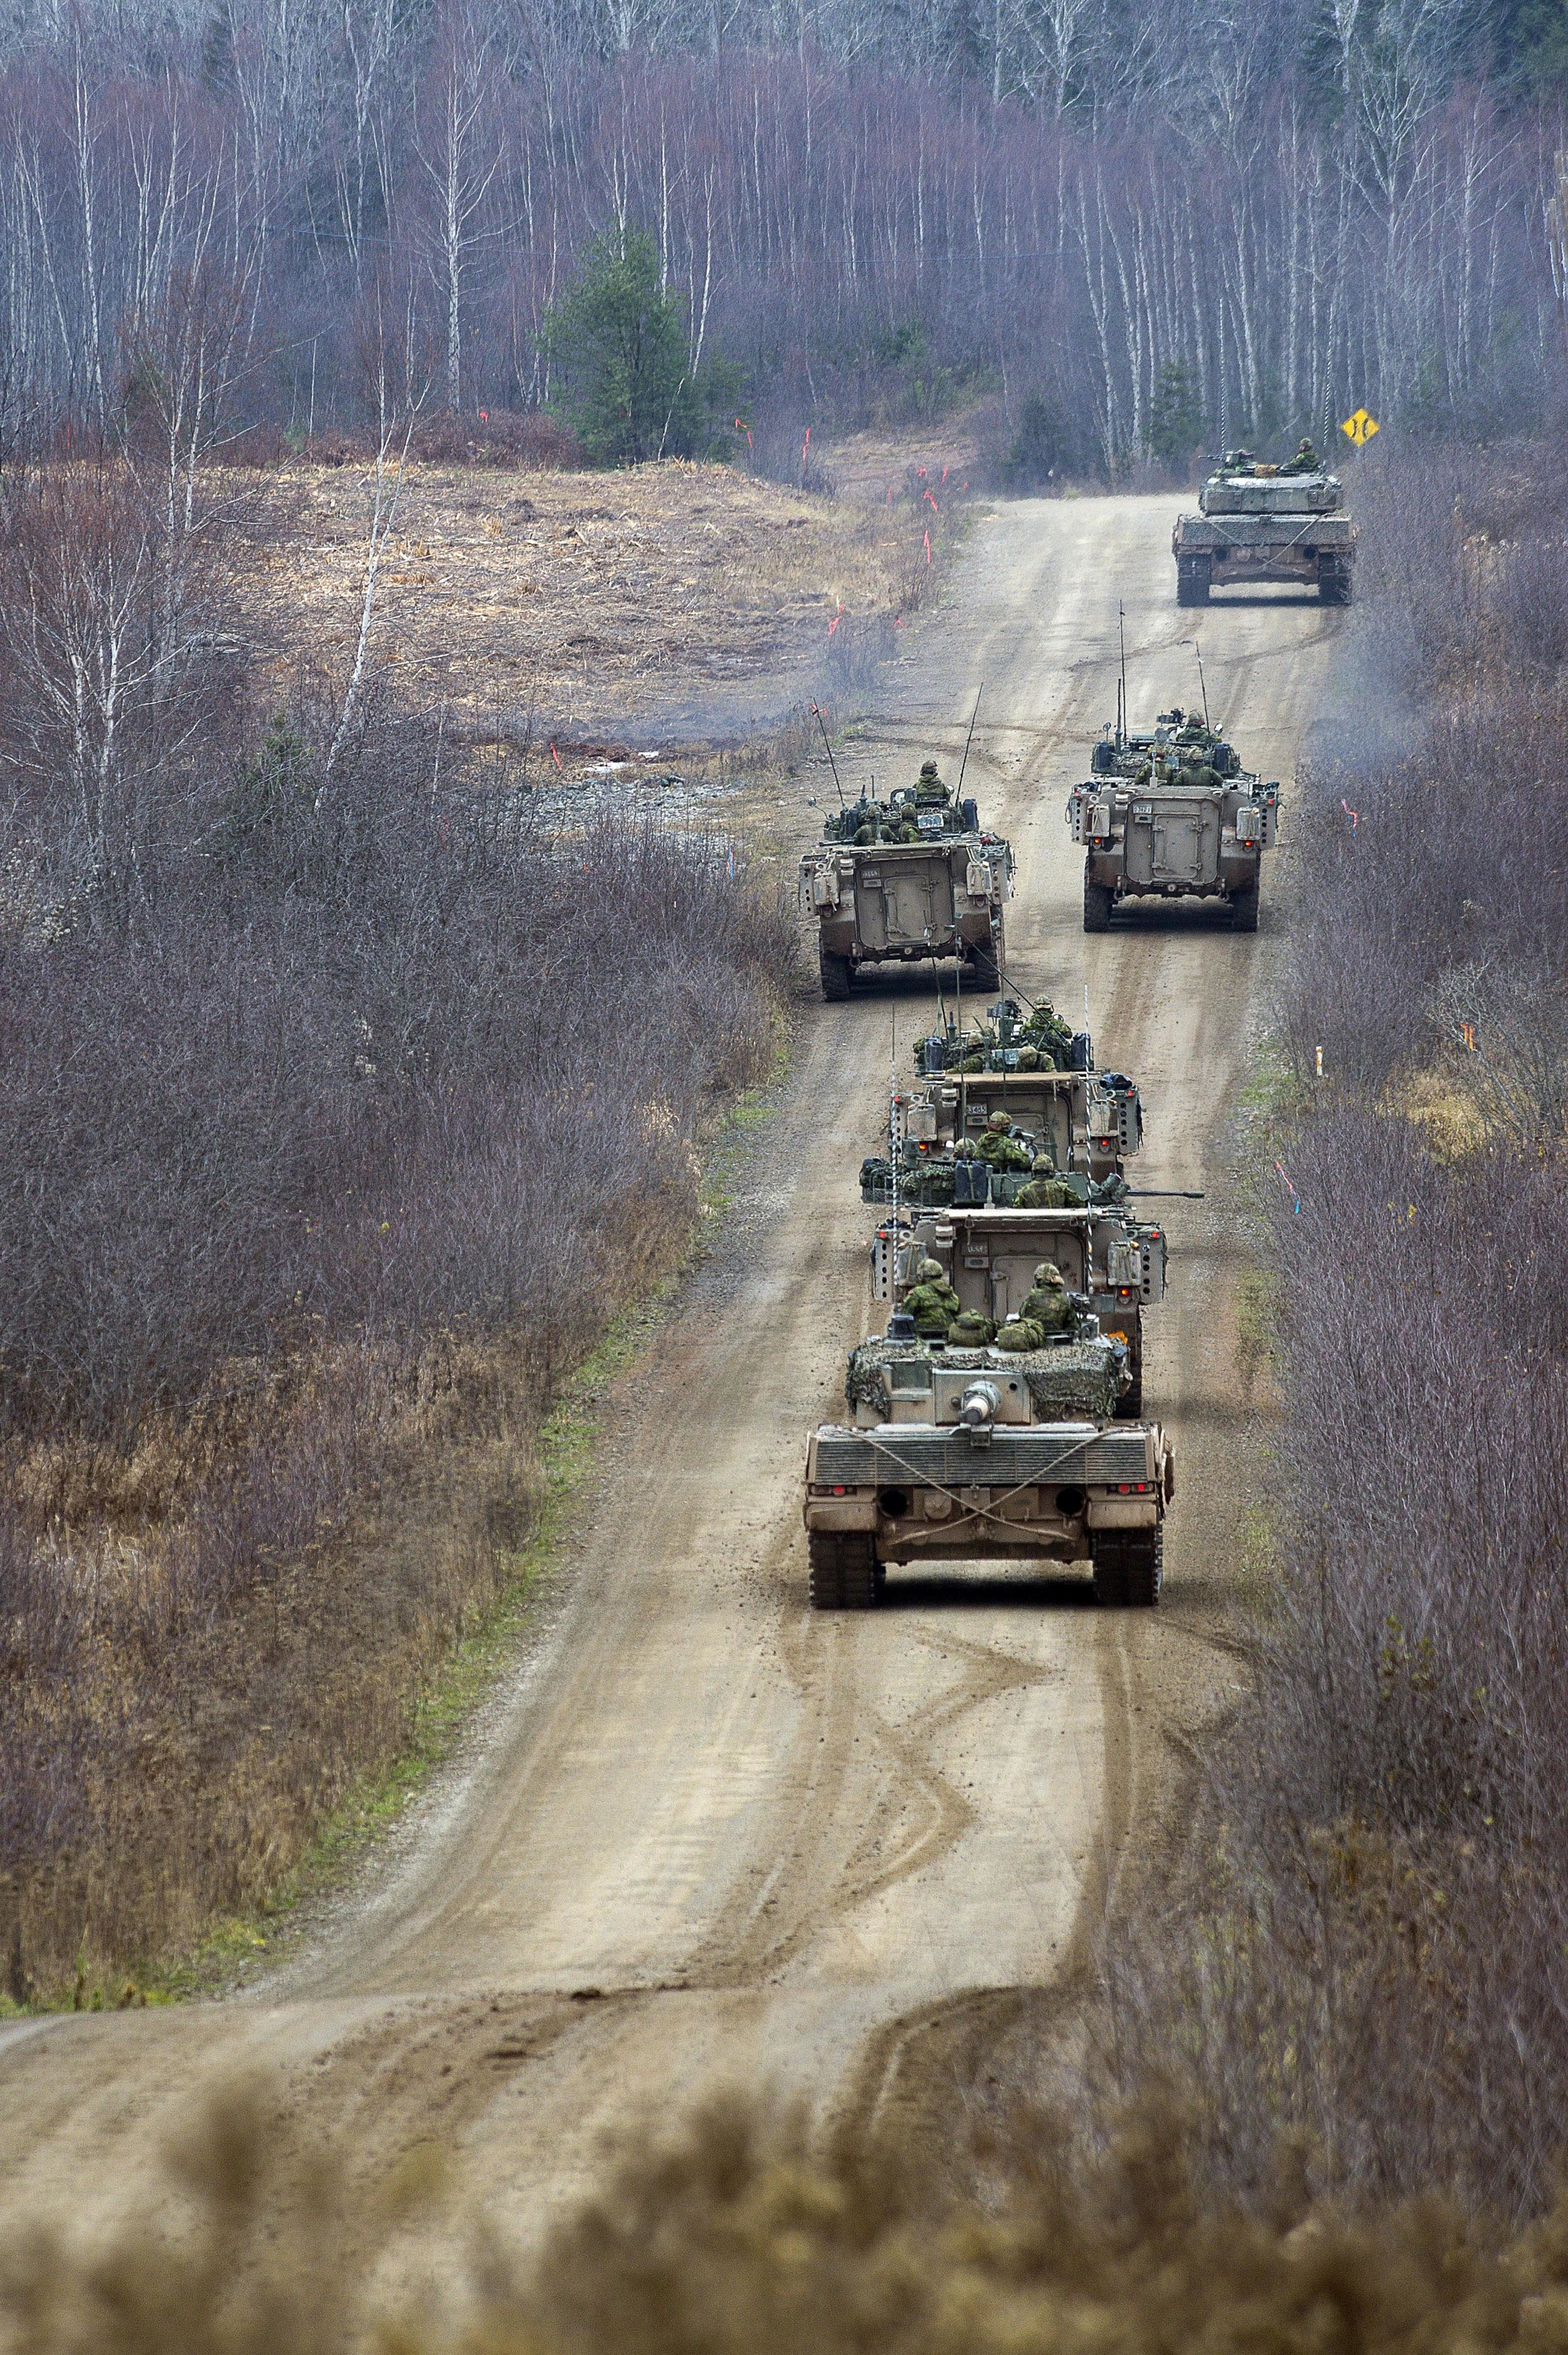 "Canadian Army soldiers participated in Exercise COMMON GROUND II 2016 at 5th Canadian Division Support Group Gagetown, November 15, 2016. In a May 3 presentation, Defence Minister Harjit Sajjan stated that the Liberals have ""a plan to allocate realistic funding to those 'bread and butter' projects that will keep our military running efficiently and effectively for years to come."" Among the projects mentioned were engineering and logistical vehicles for the army. (Cpl Peter Ford, Tactics School, Gagetown)"